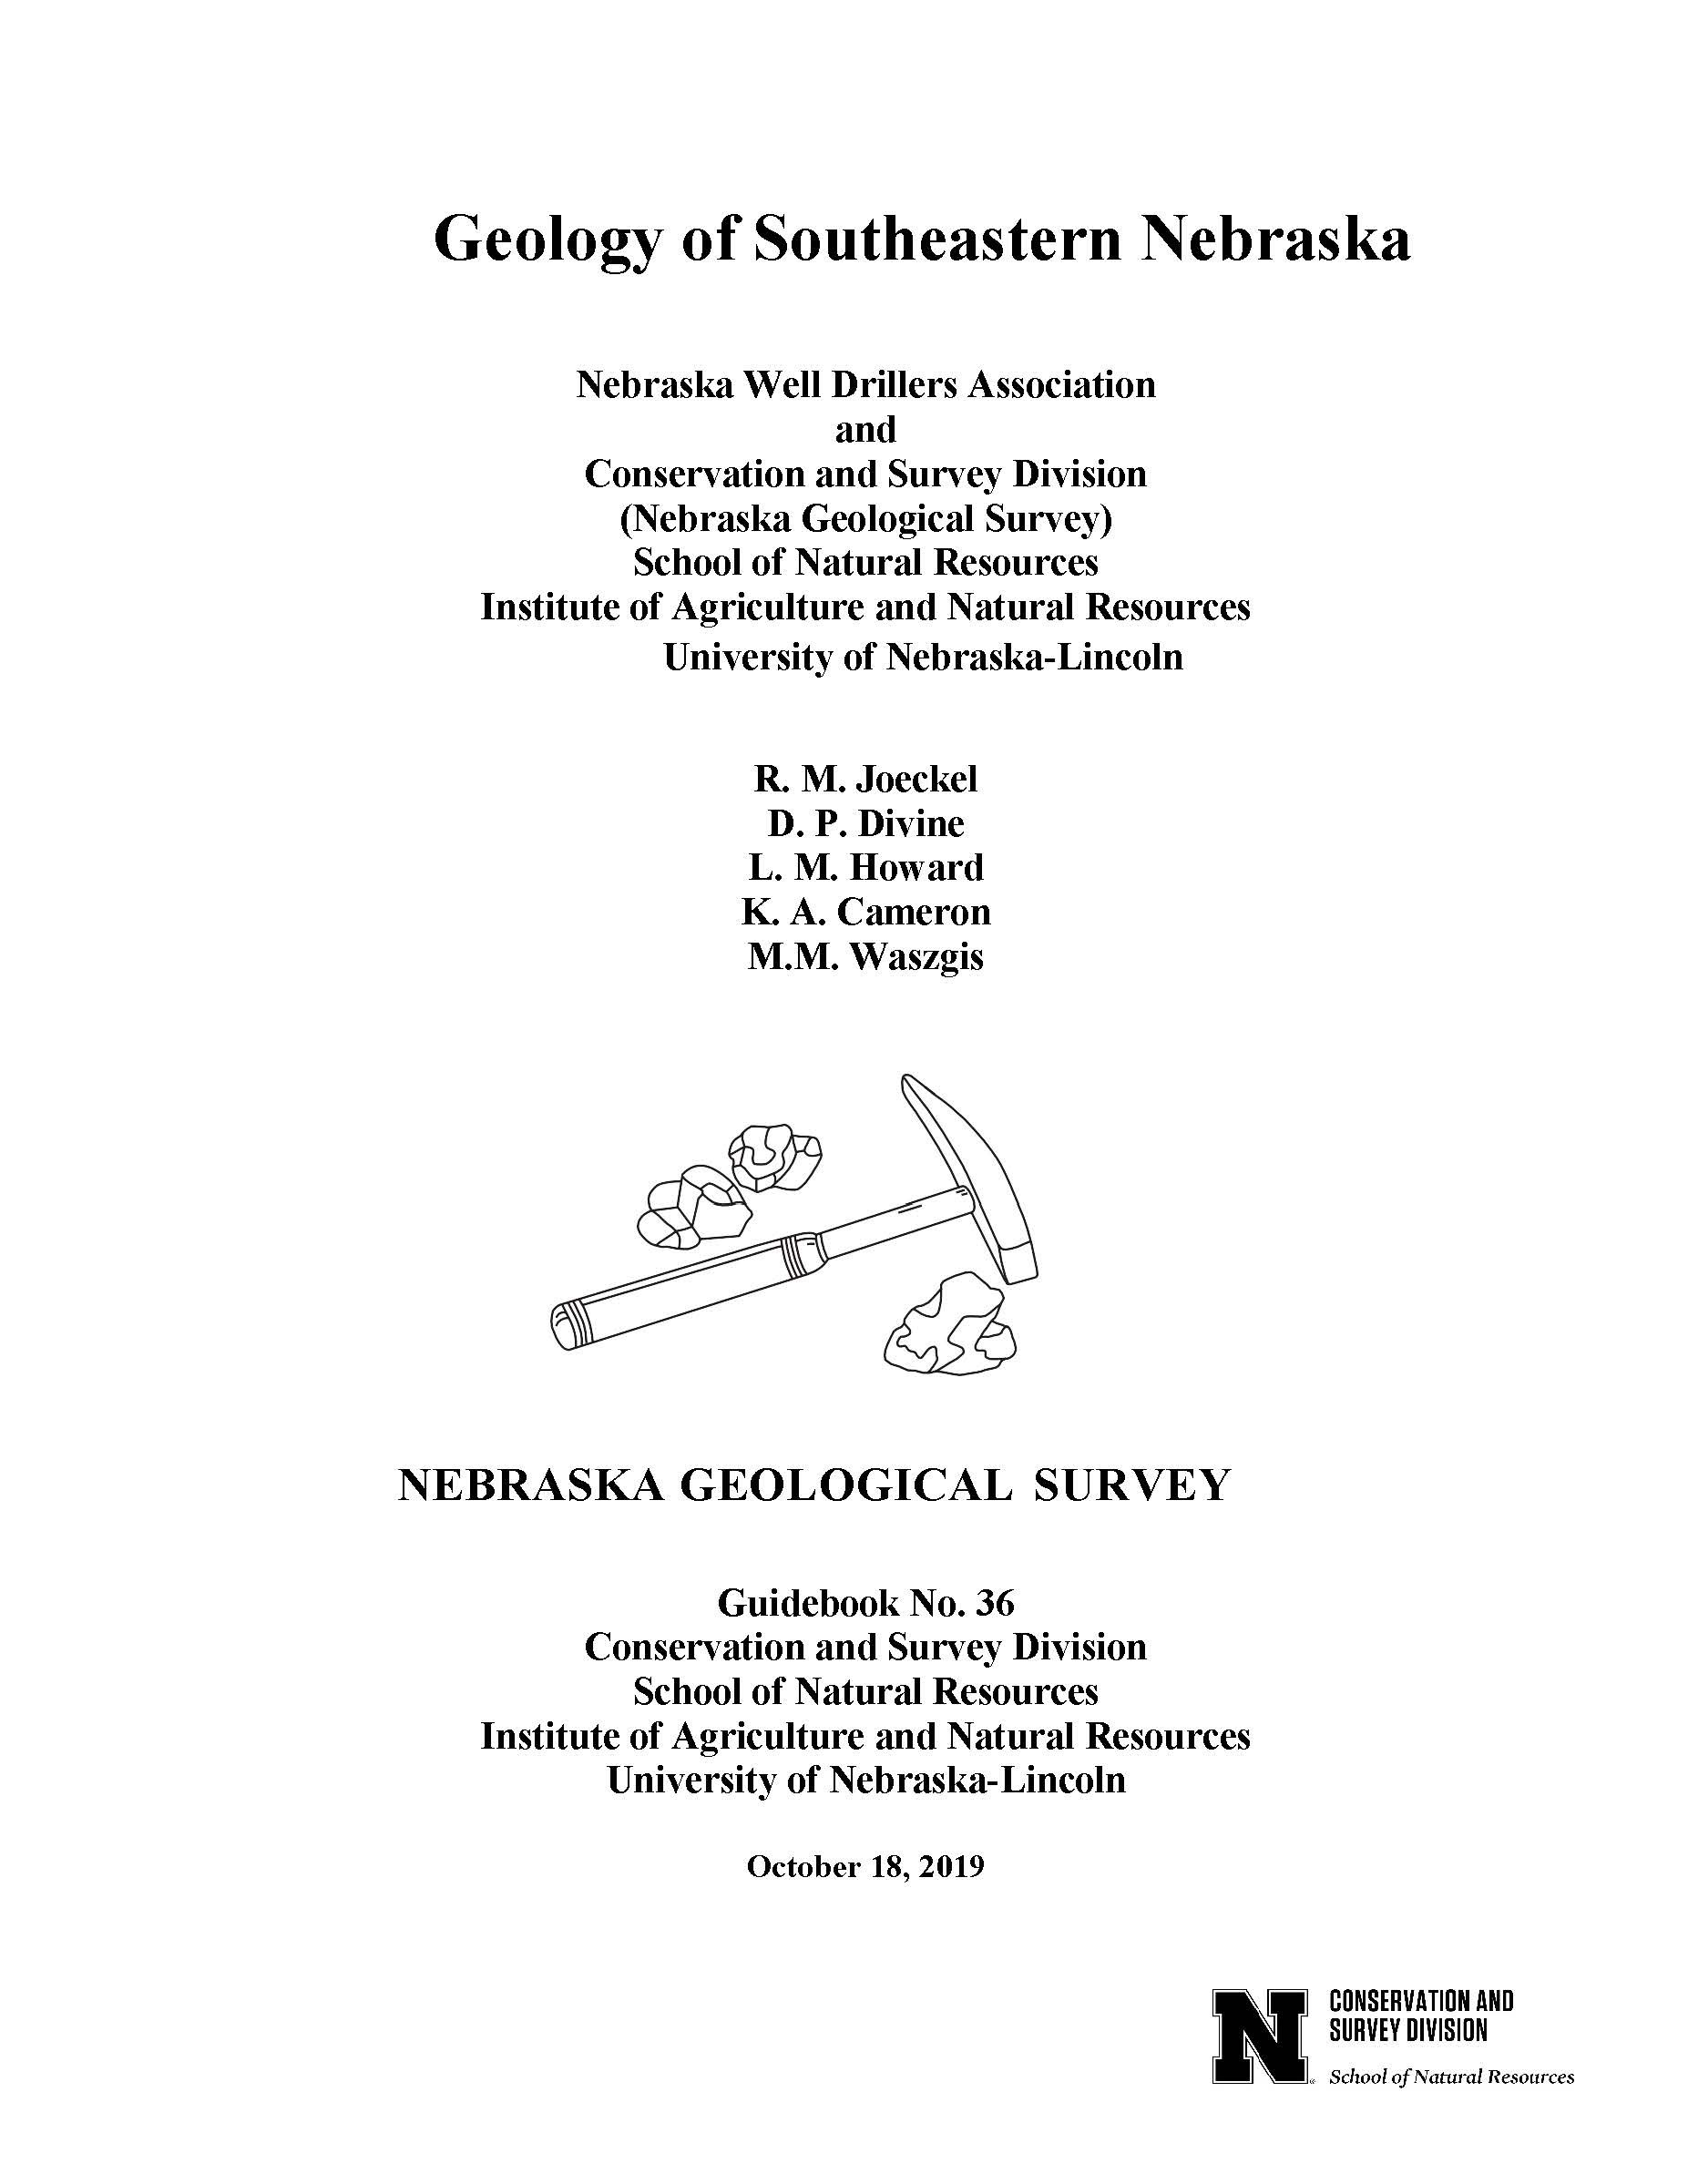 Geology of Southeastern Nebraska (GB-36)